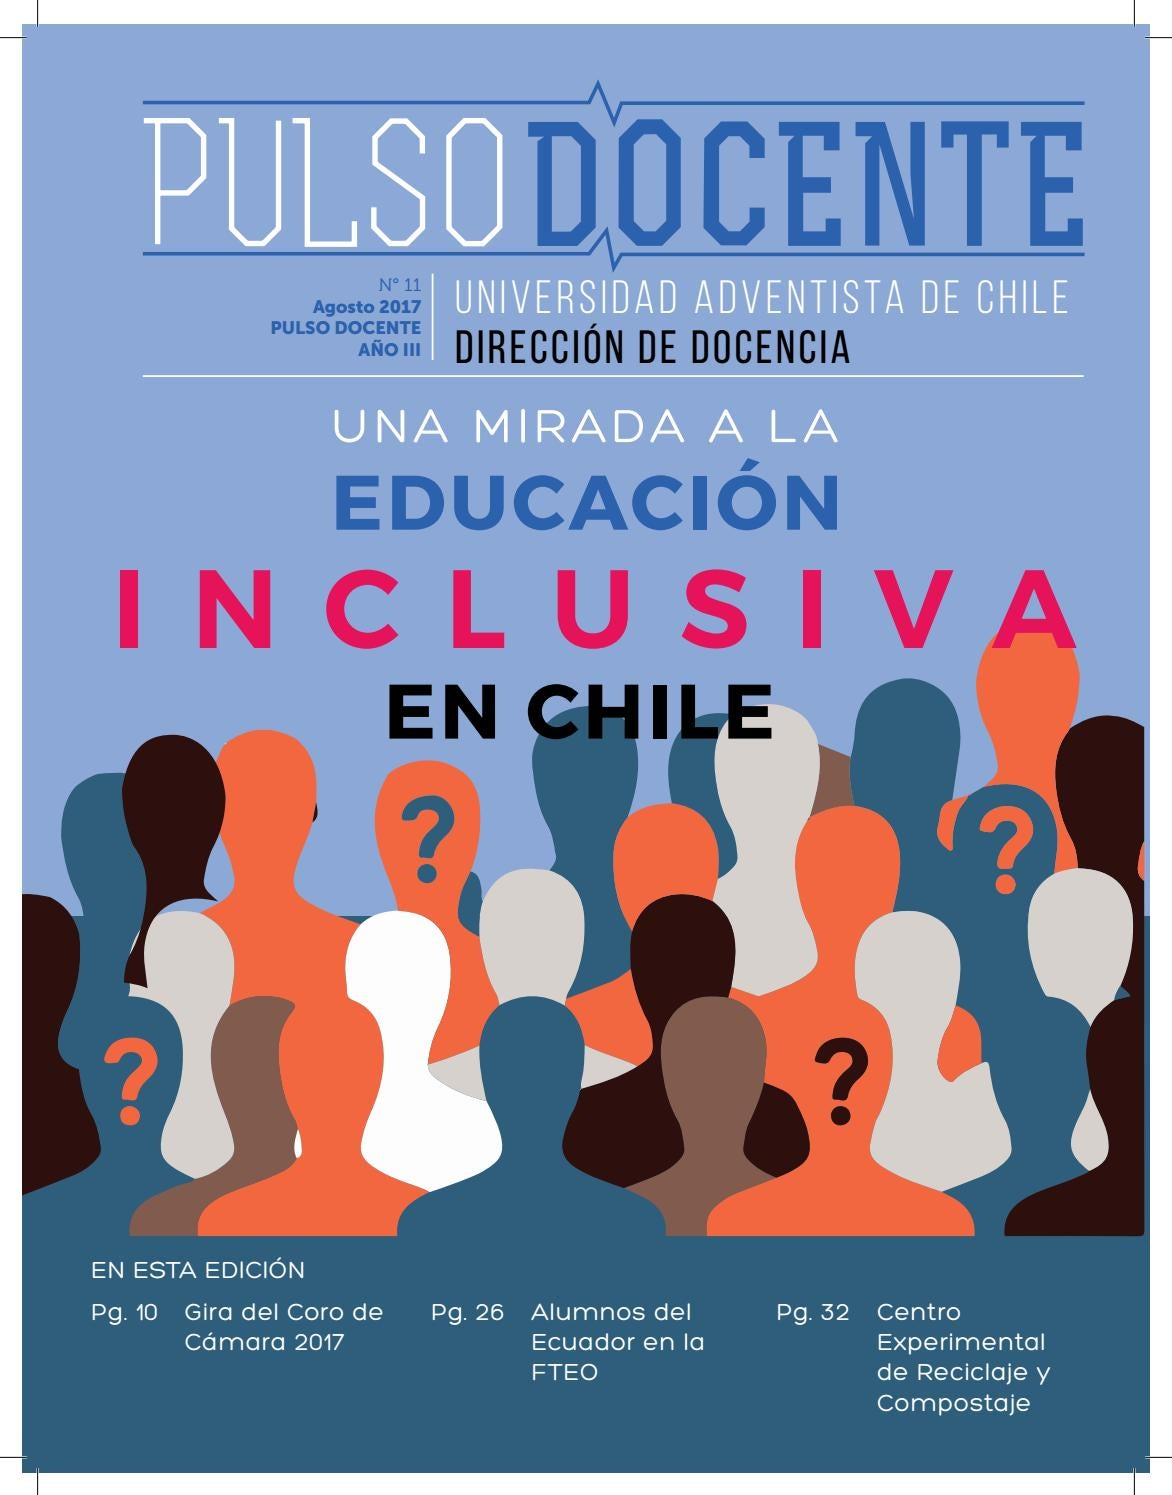 Revista pulso docente nº11 by UnACh - issuu